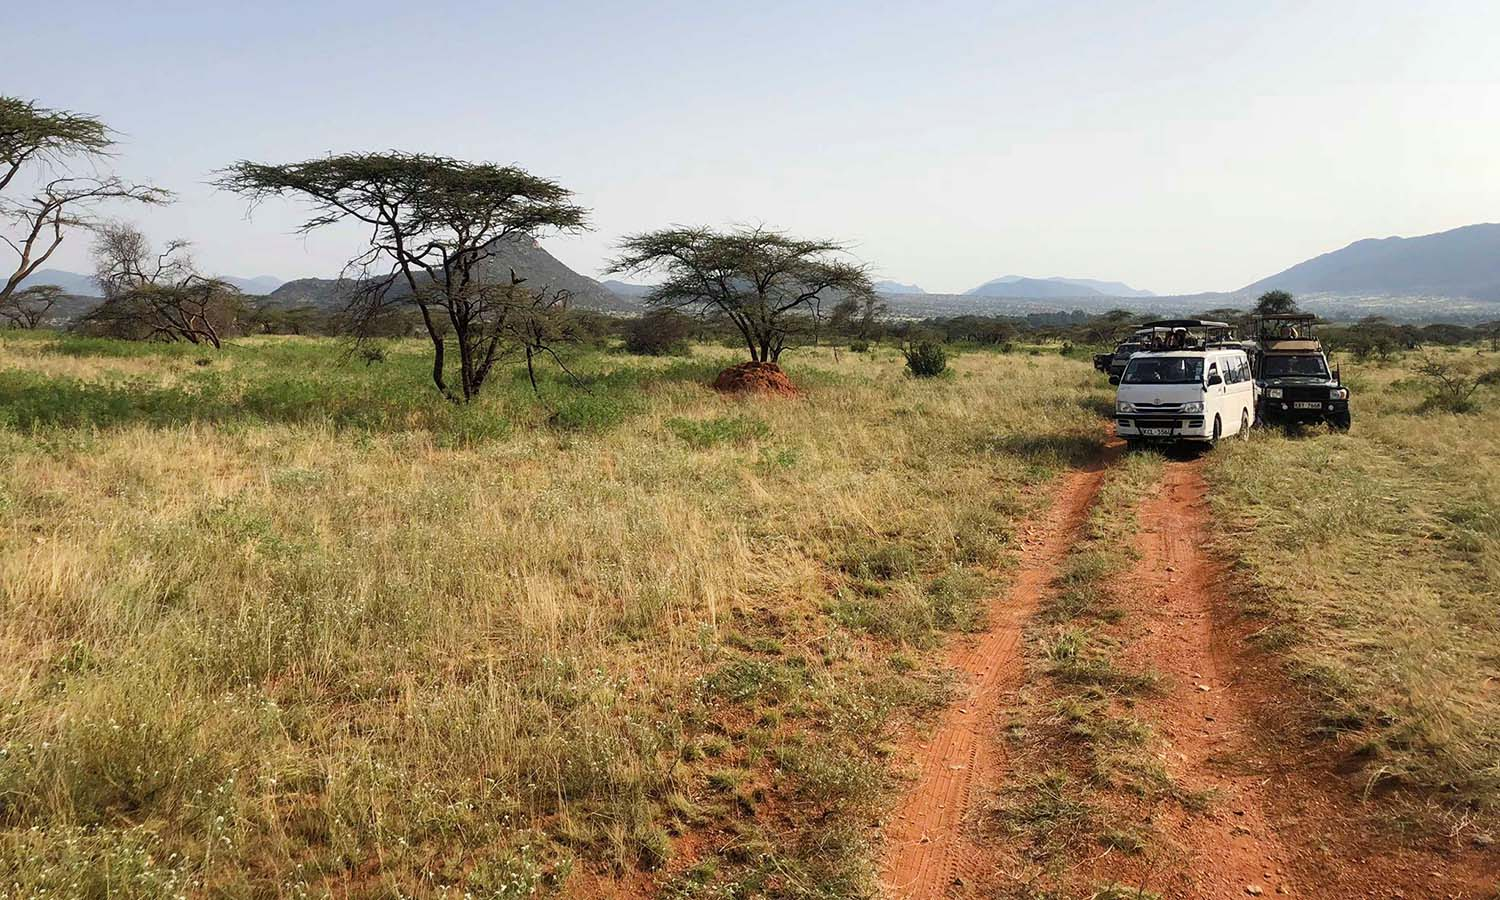 Safari vans stop at a scenic overlook in Samburu National Reserve.